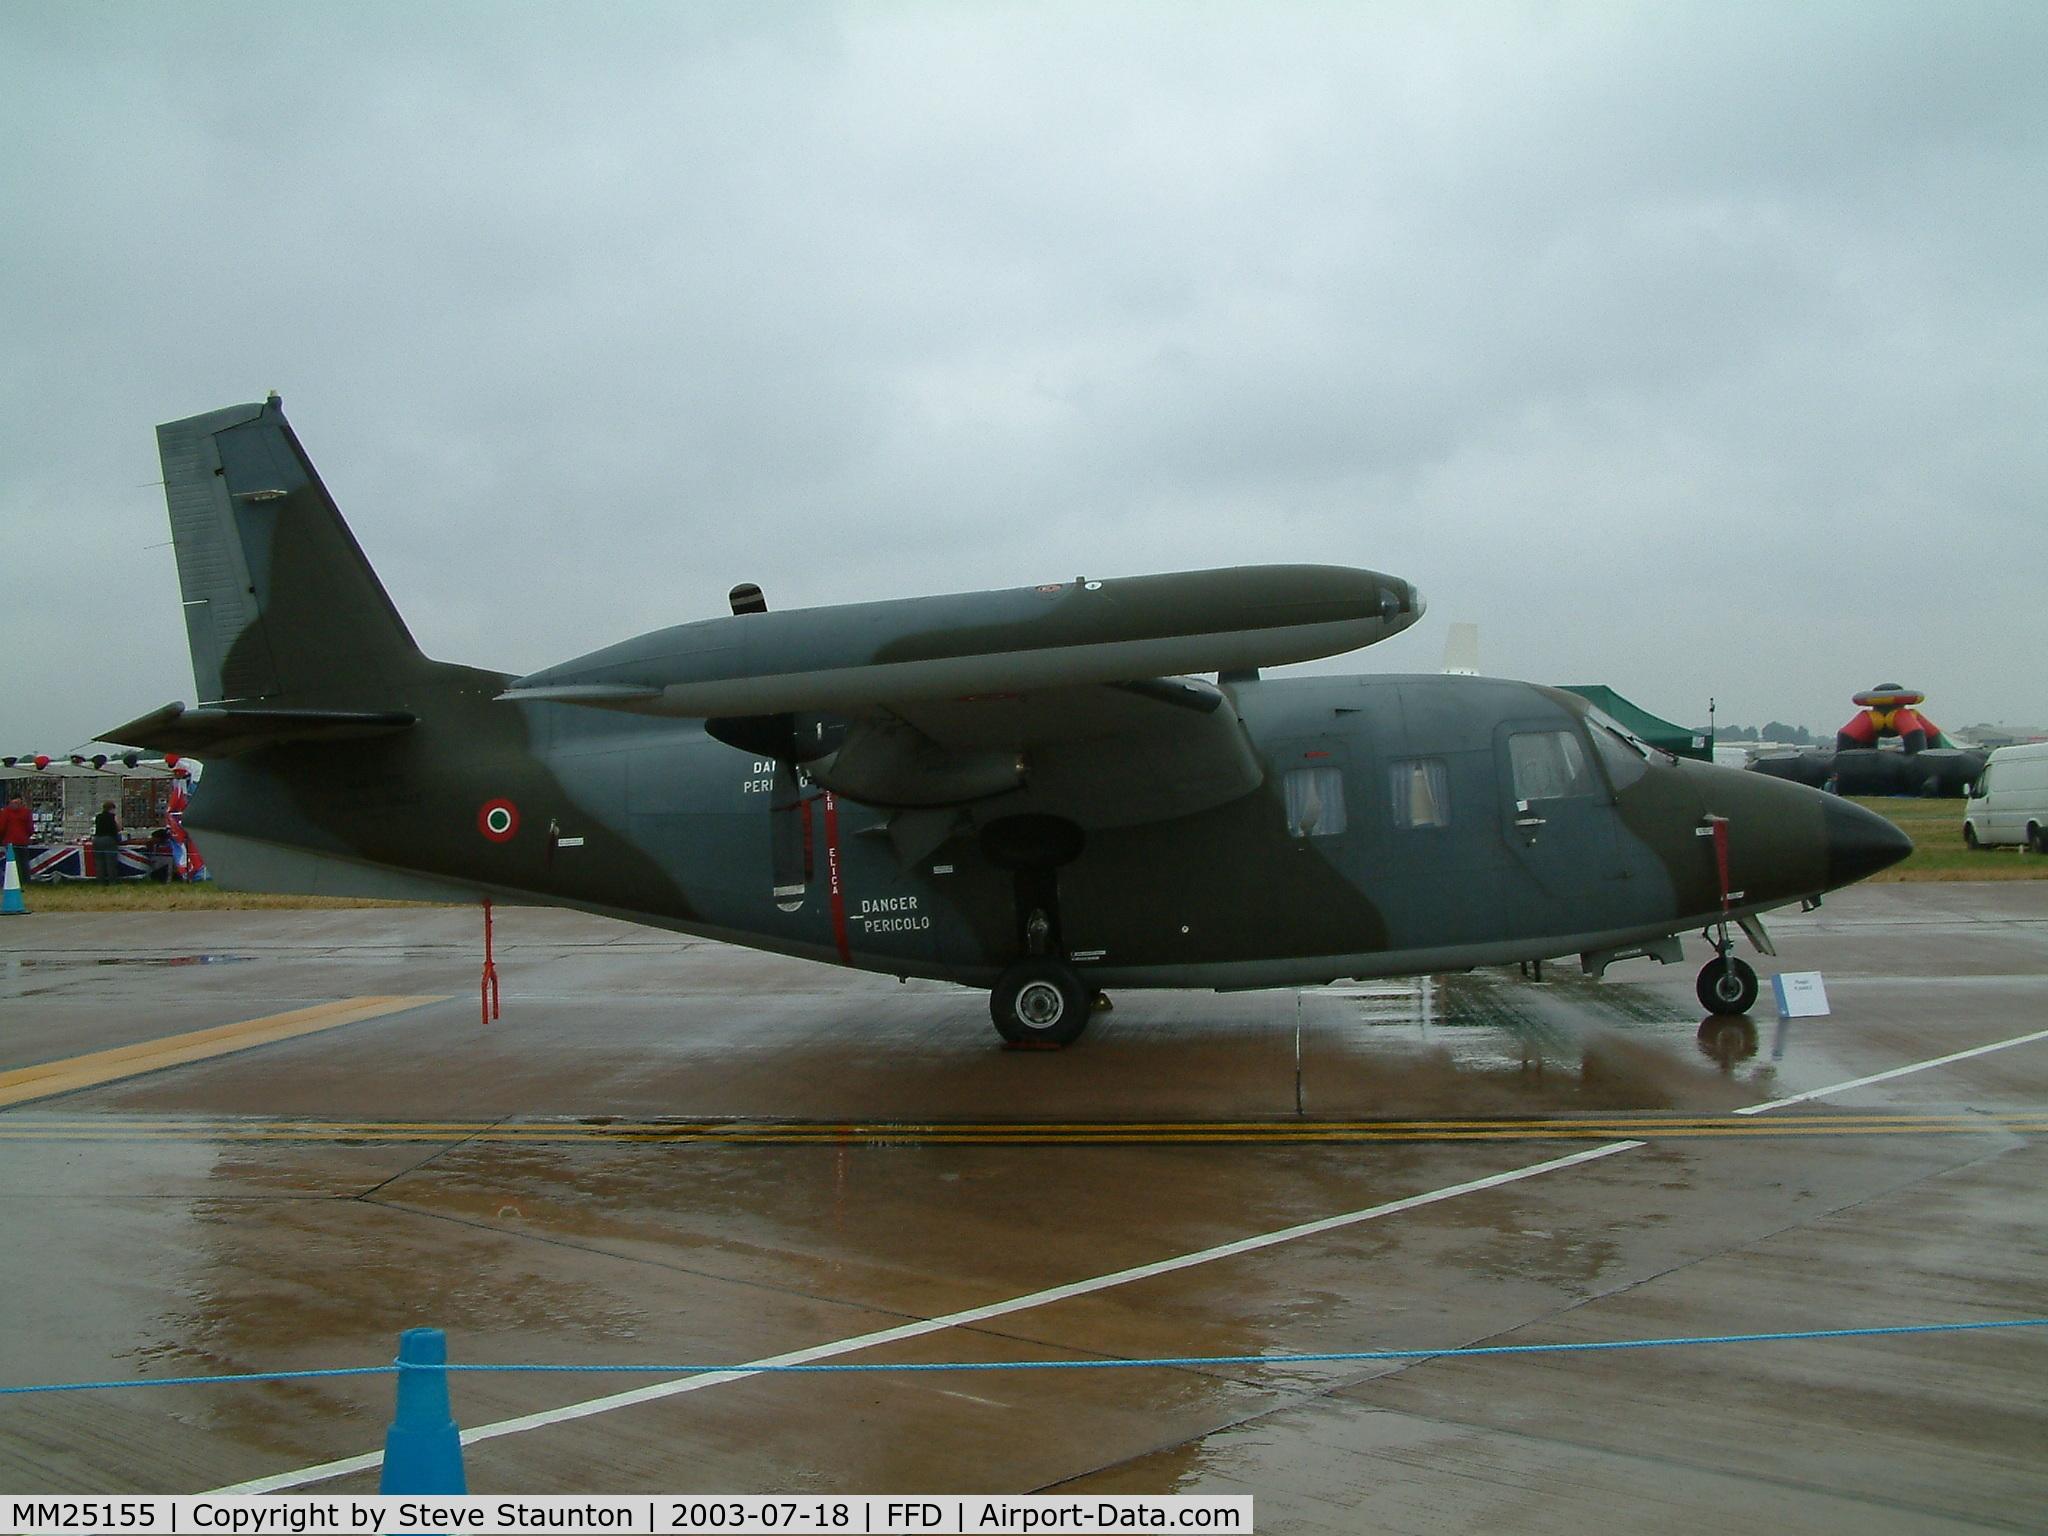 MM25155, Piaggio P-166DL-3 C/N 474, Royal International Air Tattoo 2003